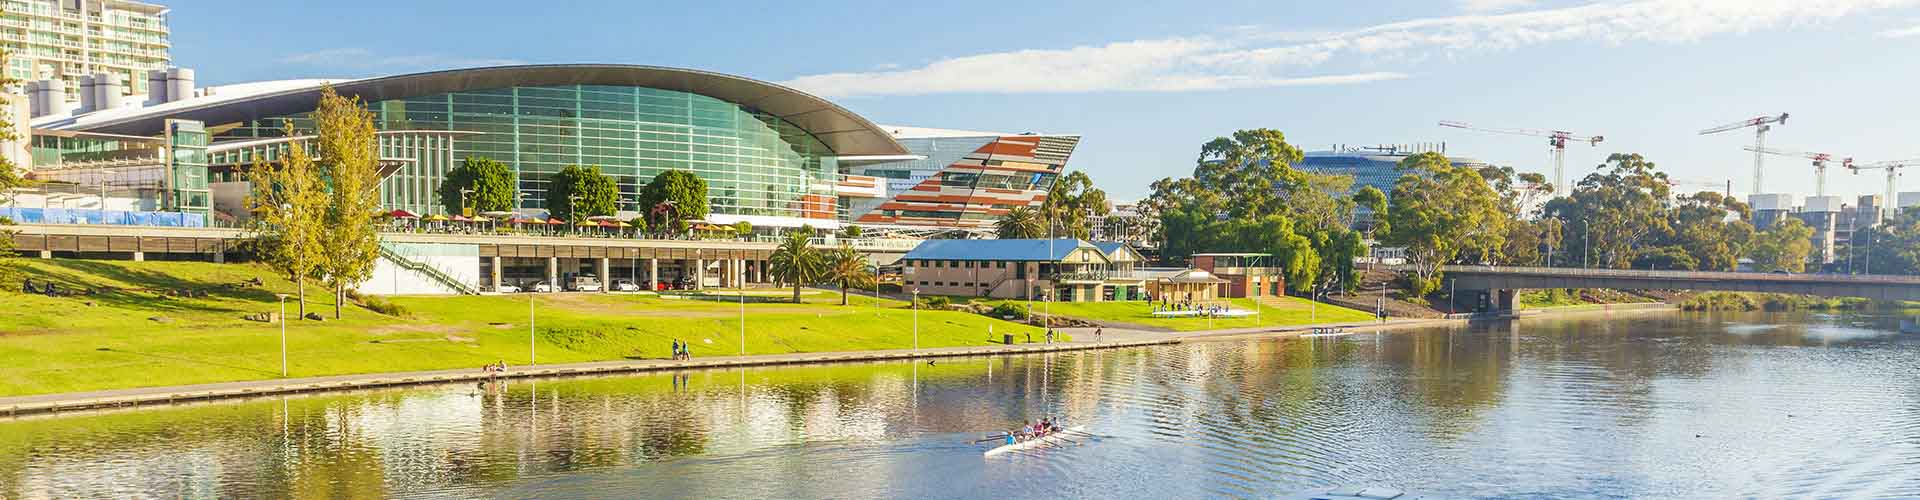 Adelaida – Hotels for students in Adelaida. Maps of Australia, photos and reviews for each hotel for student in Adelaida.